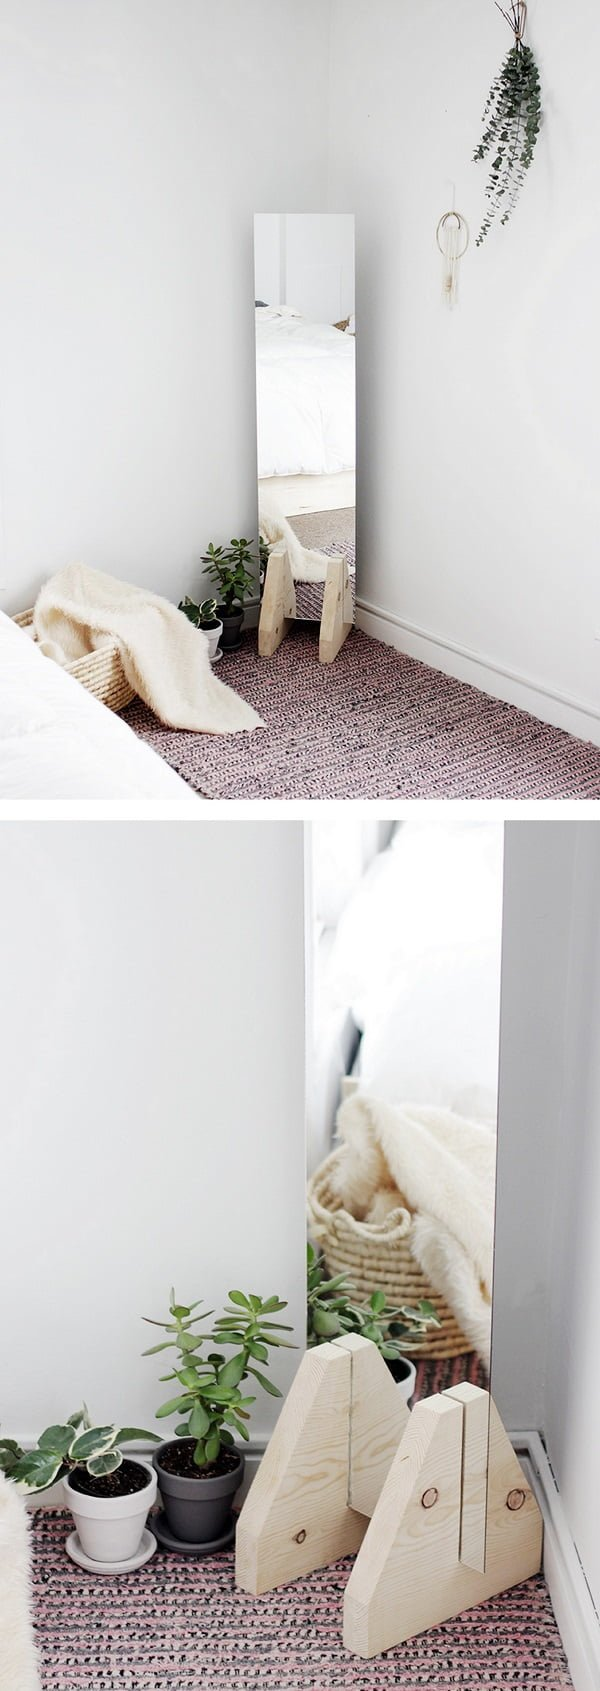 50 Fab DIY Mirror Frames You Can Easily Make Yourself - Check out how to make an easy DIY minimalist floor mirror